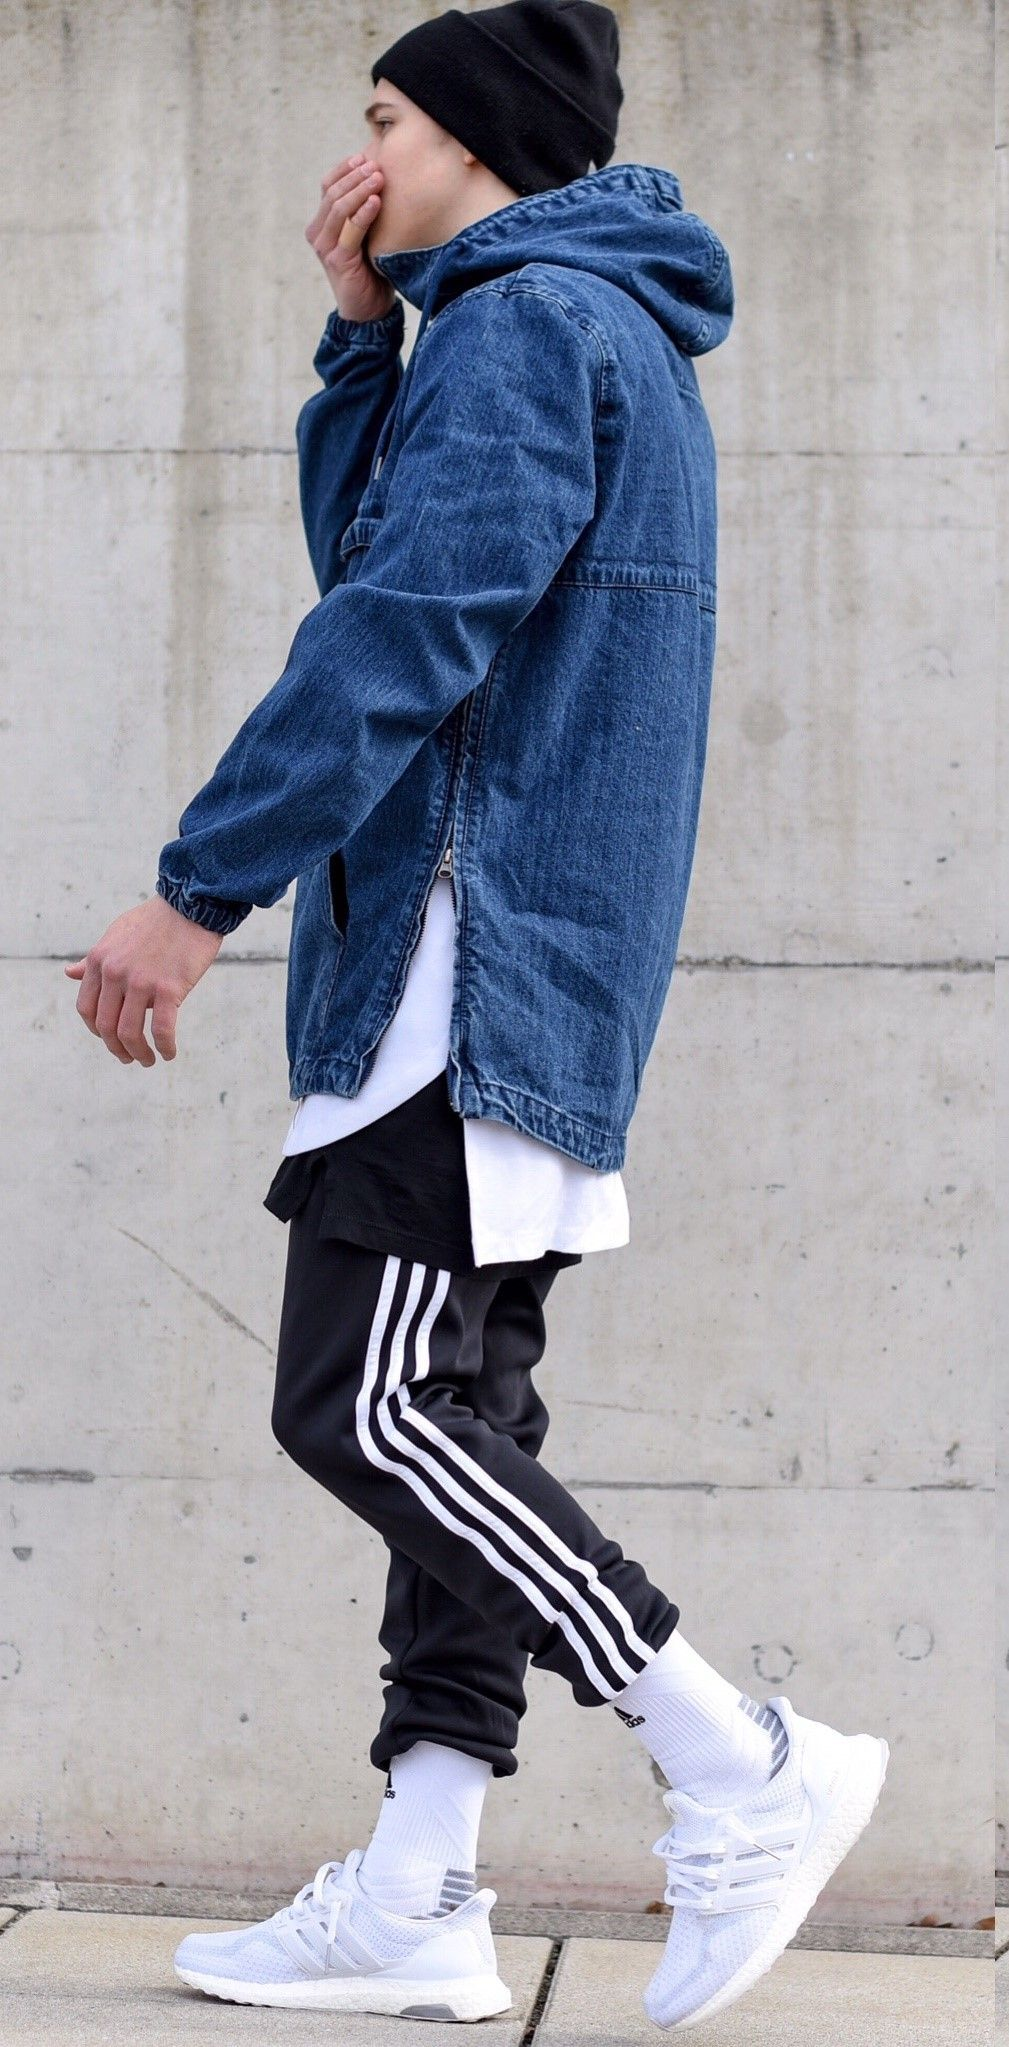 Jeans Jacket with Sweatpants